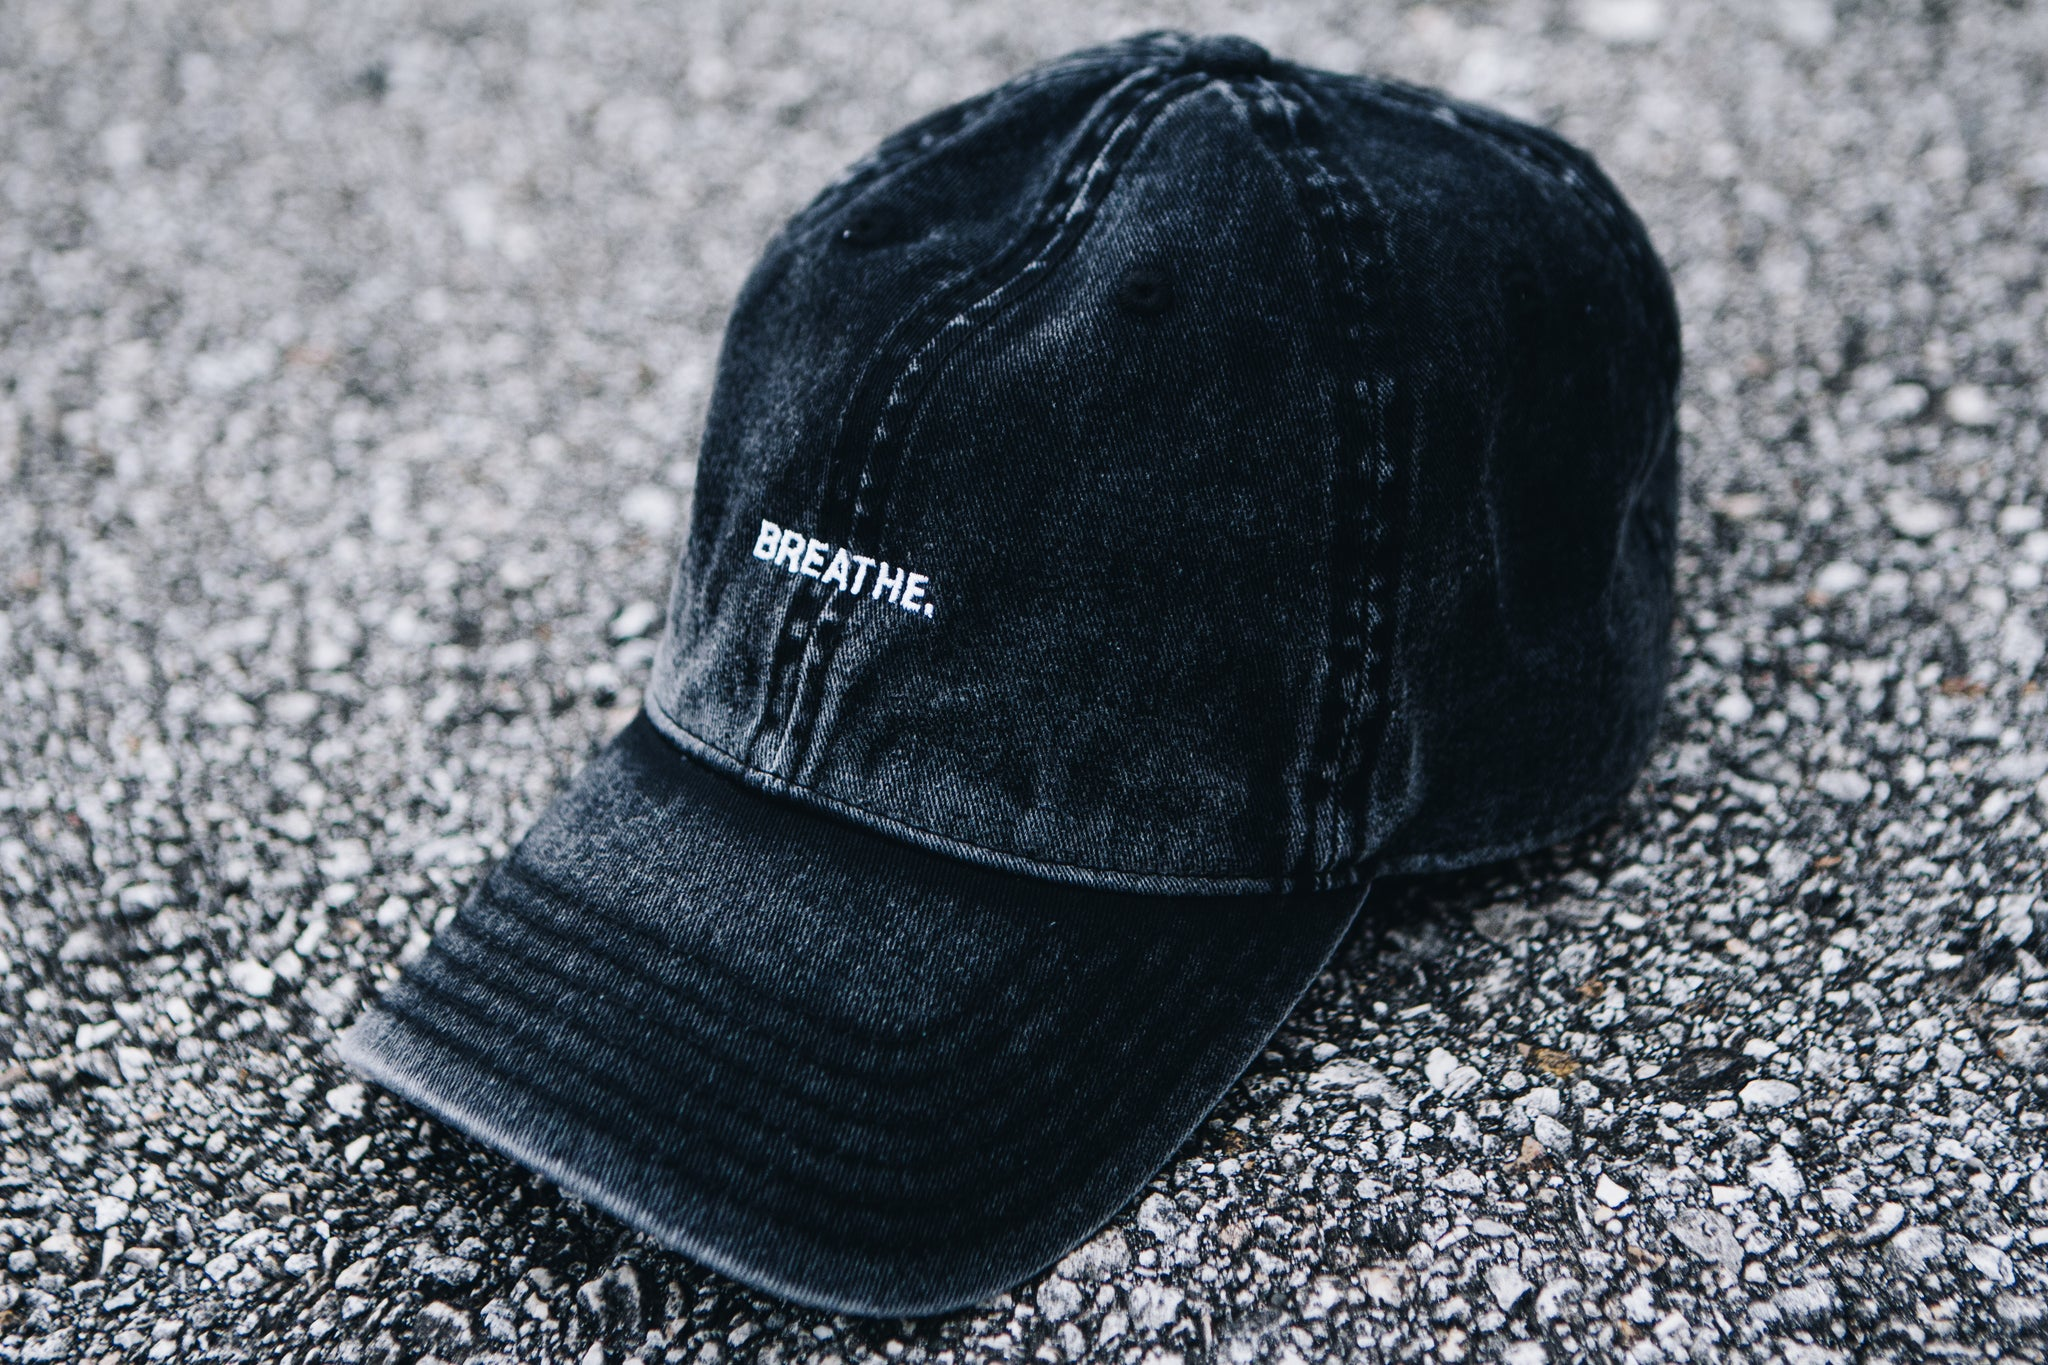 Breathe Vintage Dad Hat